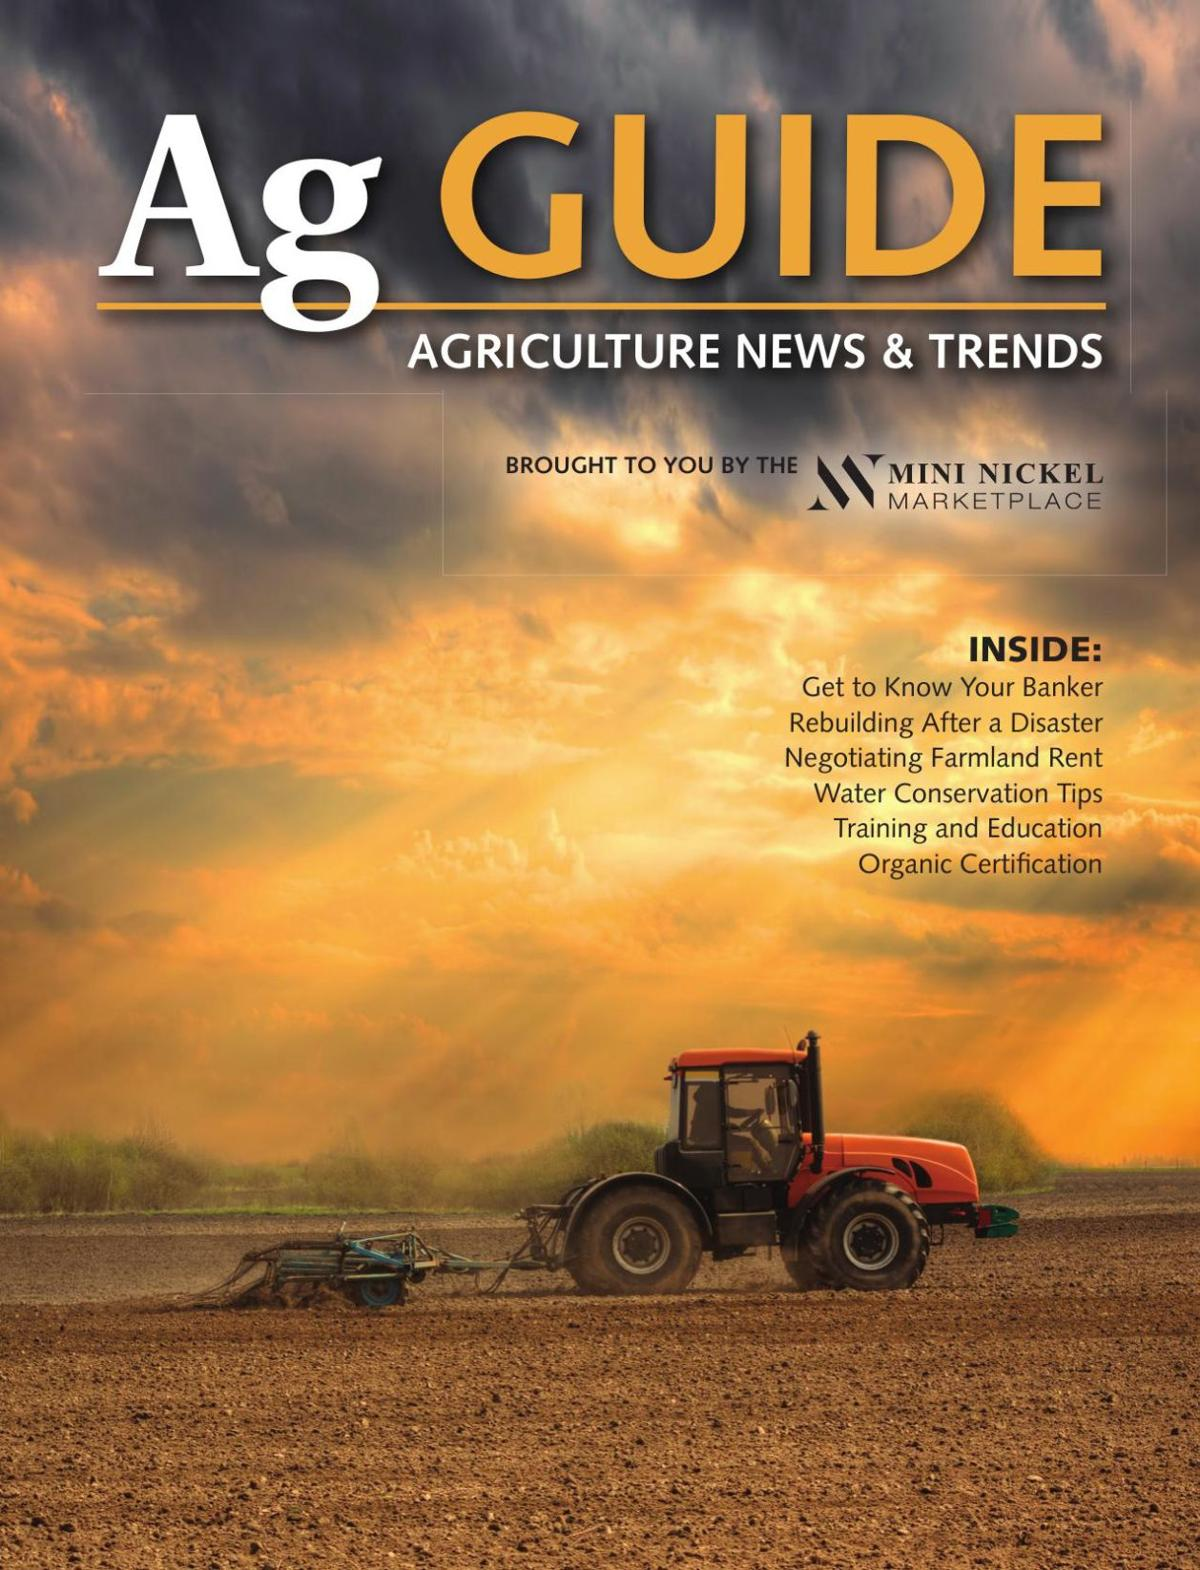 Ag Guide - Agriculture News & Trends - March 15, 2018